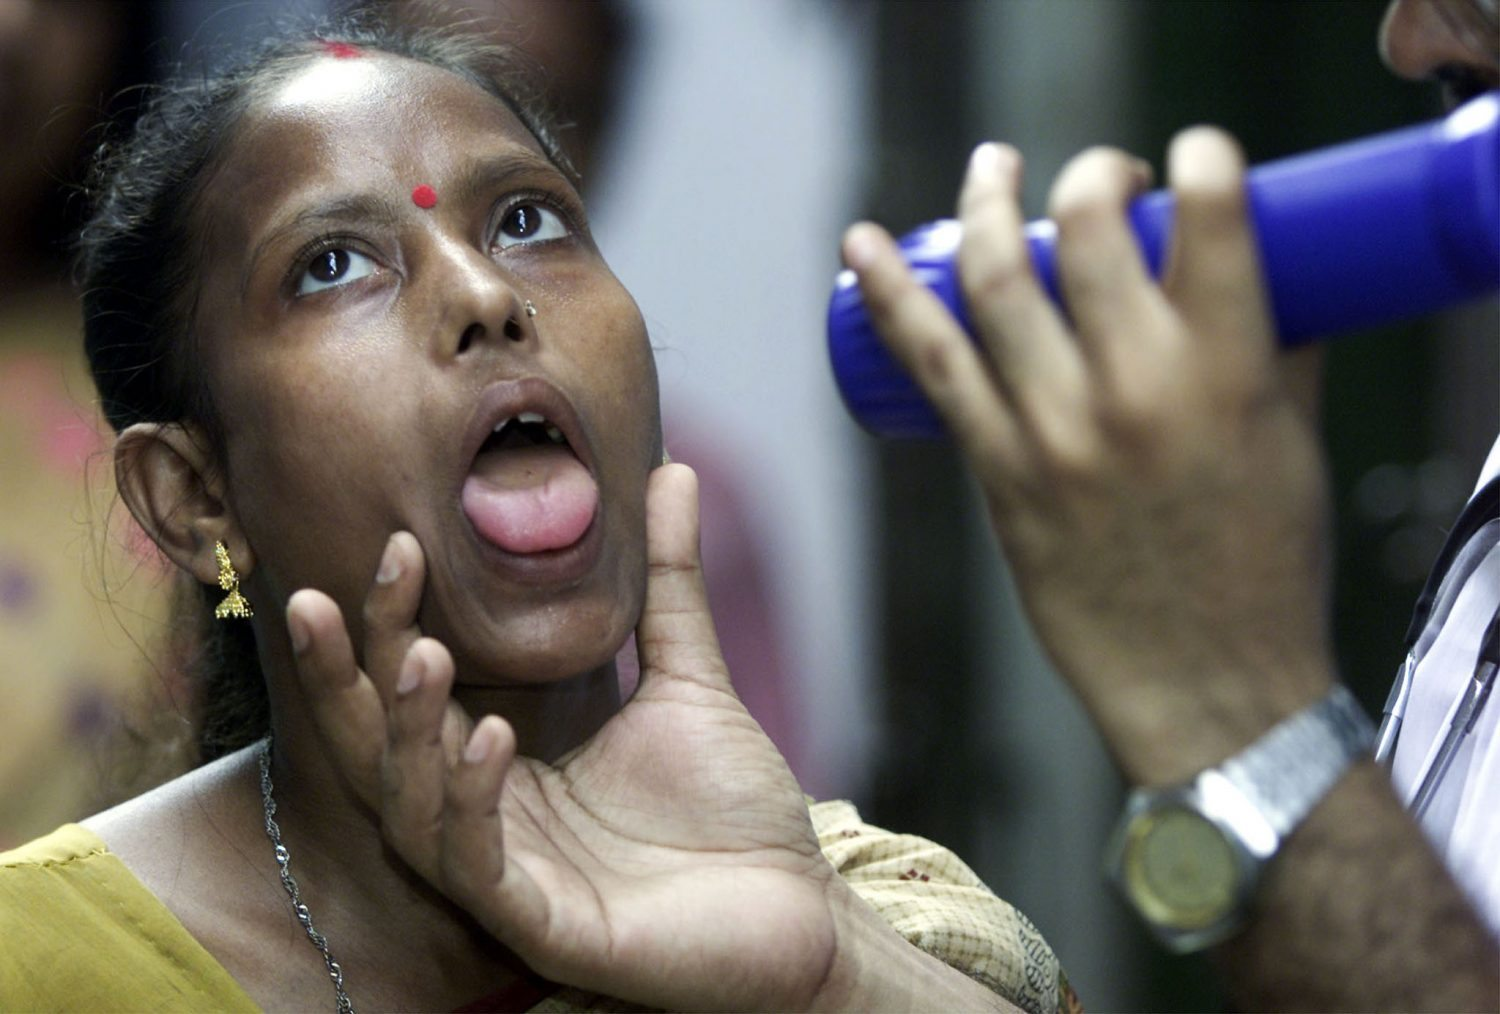 An Indian doctor examines sex worker Geeta Das who's suffering from tuberculosis at a health clinic for prostitutes in the eastern Indian city of Calcutta October 30, 2001. The United Nations said in a report in June that AIDS killed 310,000 people in India in 1999. REUTERS/Jayanta Shaw JS/DL - RTROT6B